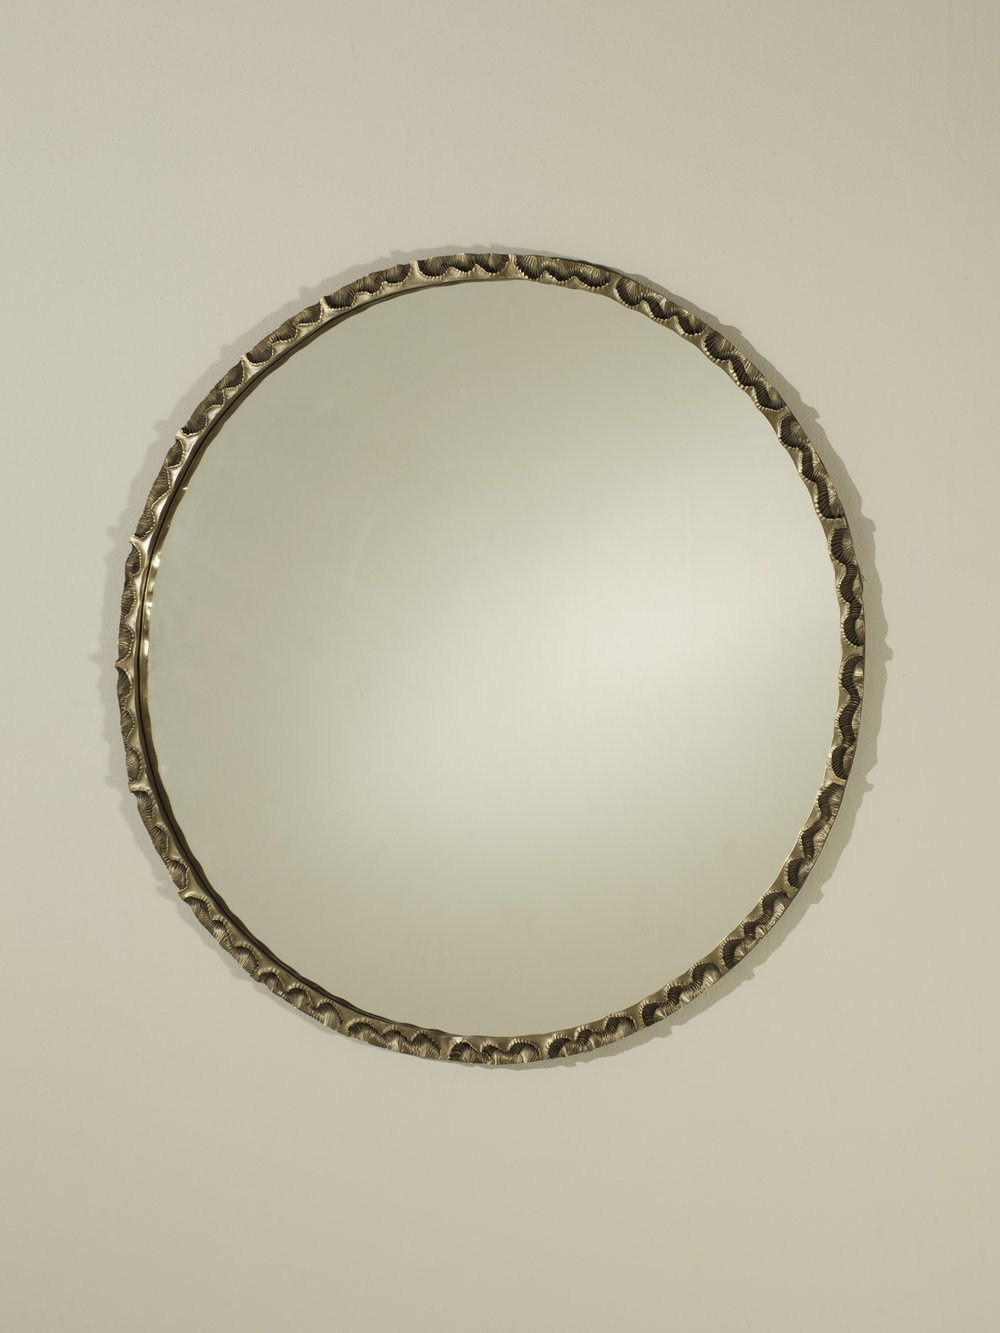 'Spirifer' - round 2013    Bronze, float glass    830 mm diameter 30 mm deep    Ed of 5 - 3 AP